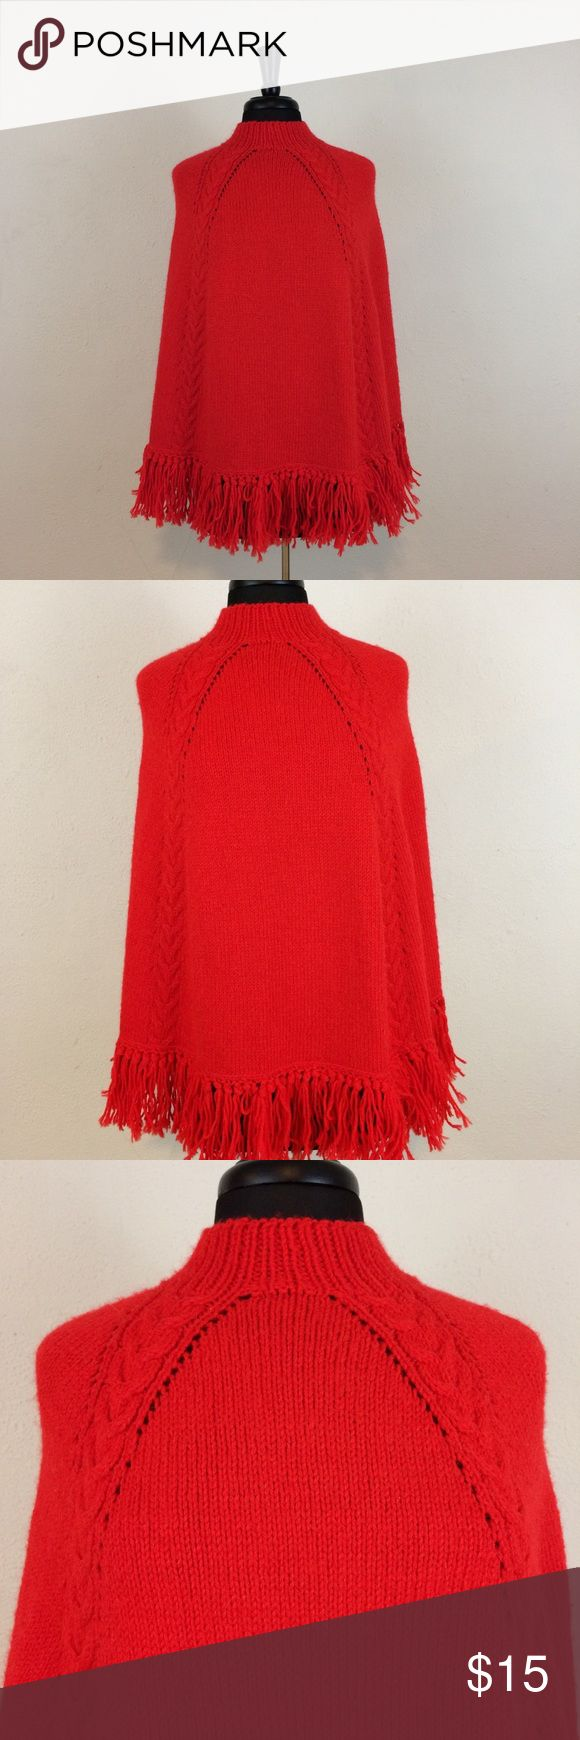 Vintage Candy Apple Red Knit Poncho Revisit the 1970s in this warm poncho with mock turtleneck. Sweaters Shrugs & Ponchos